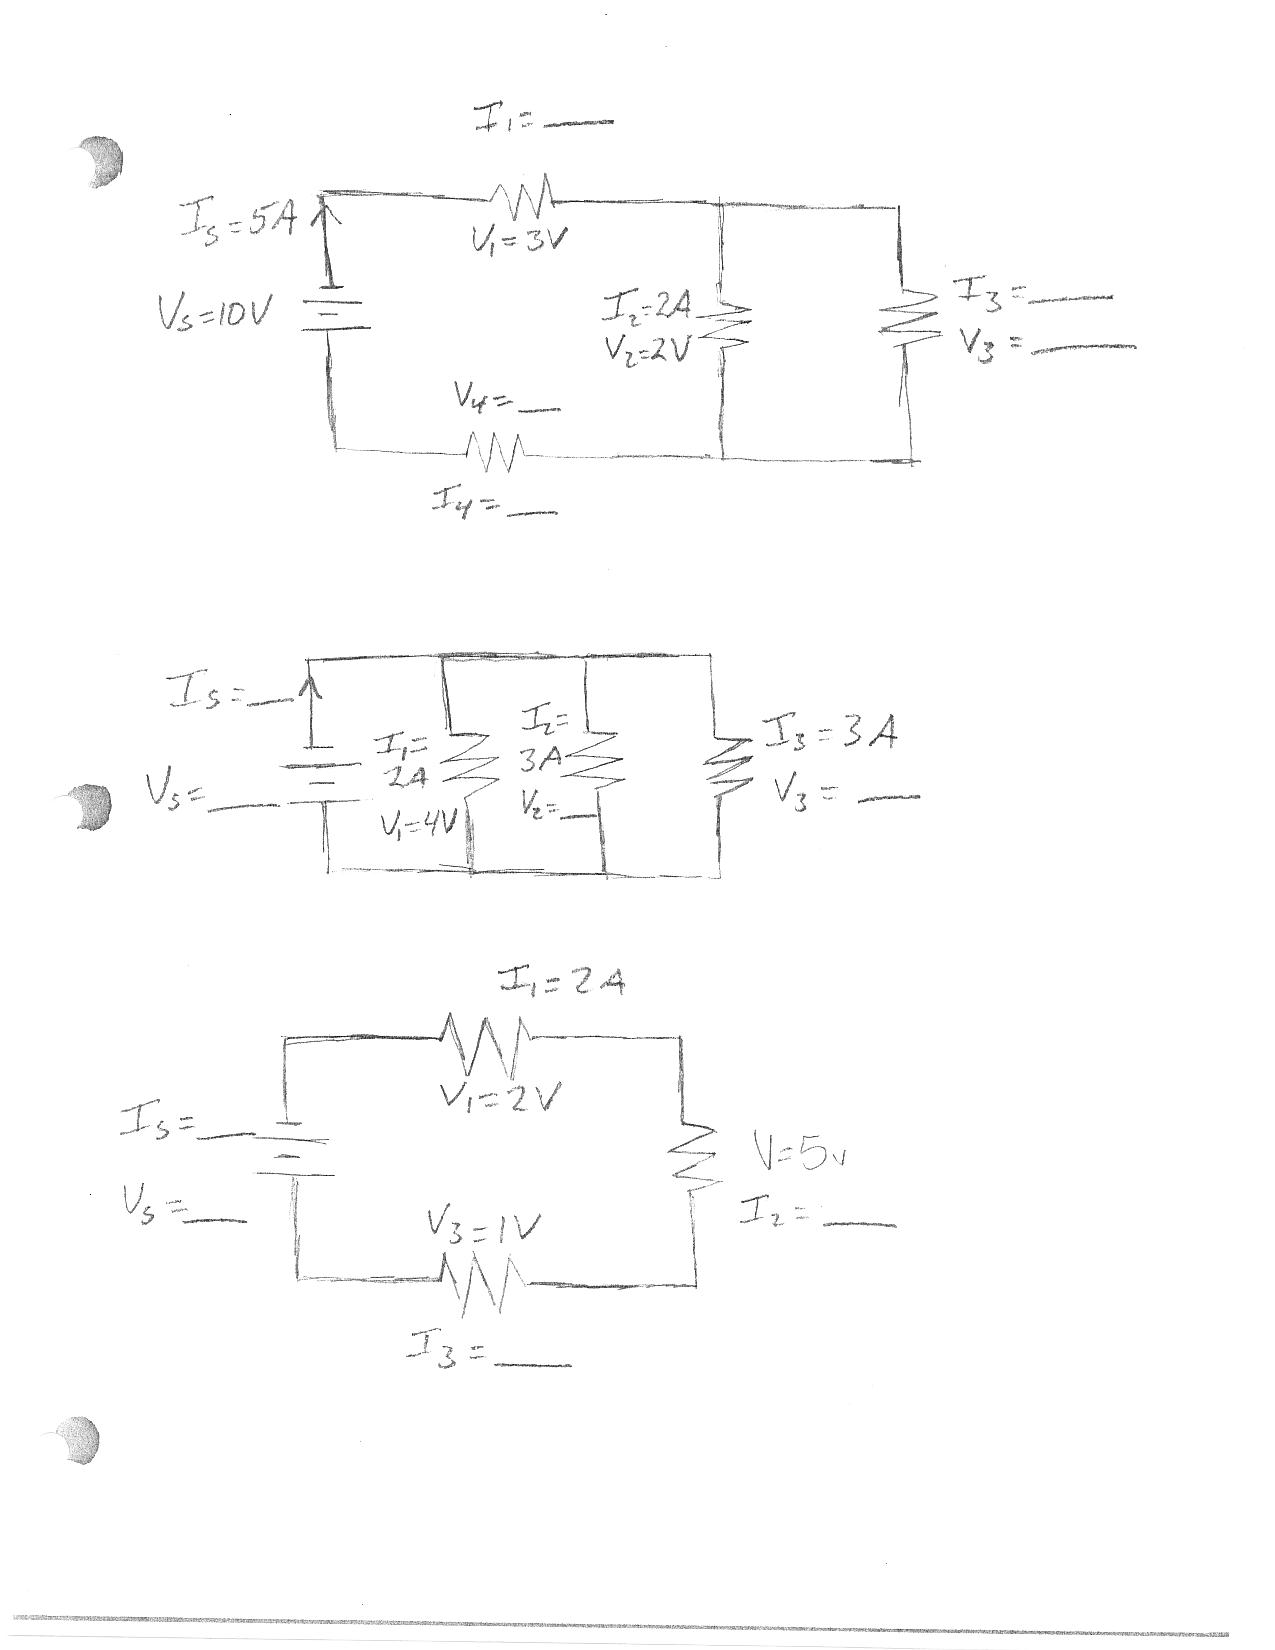 Mrohrling Electric Circuit Drawing Nov 18th Practice Circuits For Your Quiz Tomorrow Construction Review And Summary Note 19th Calculations With